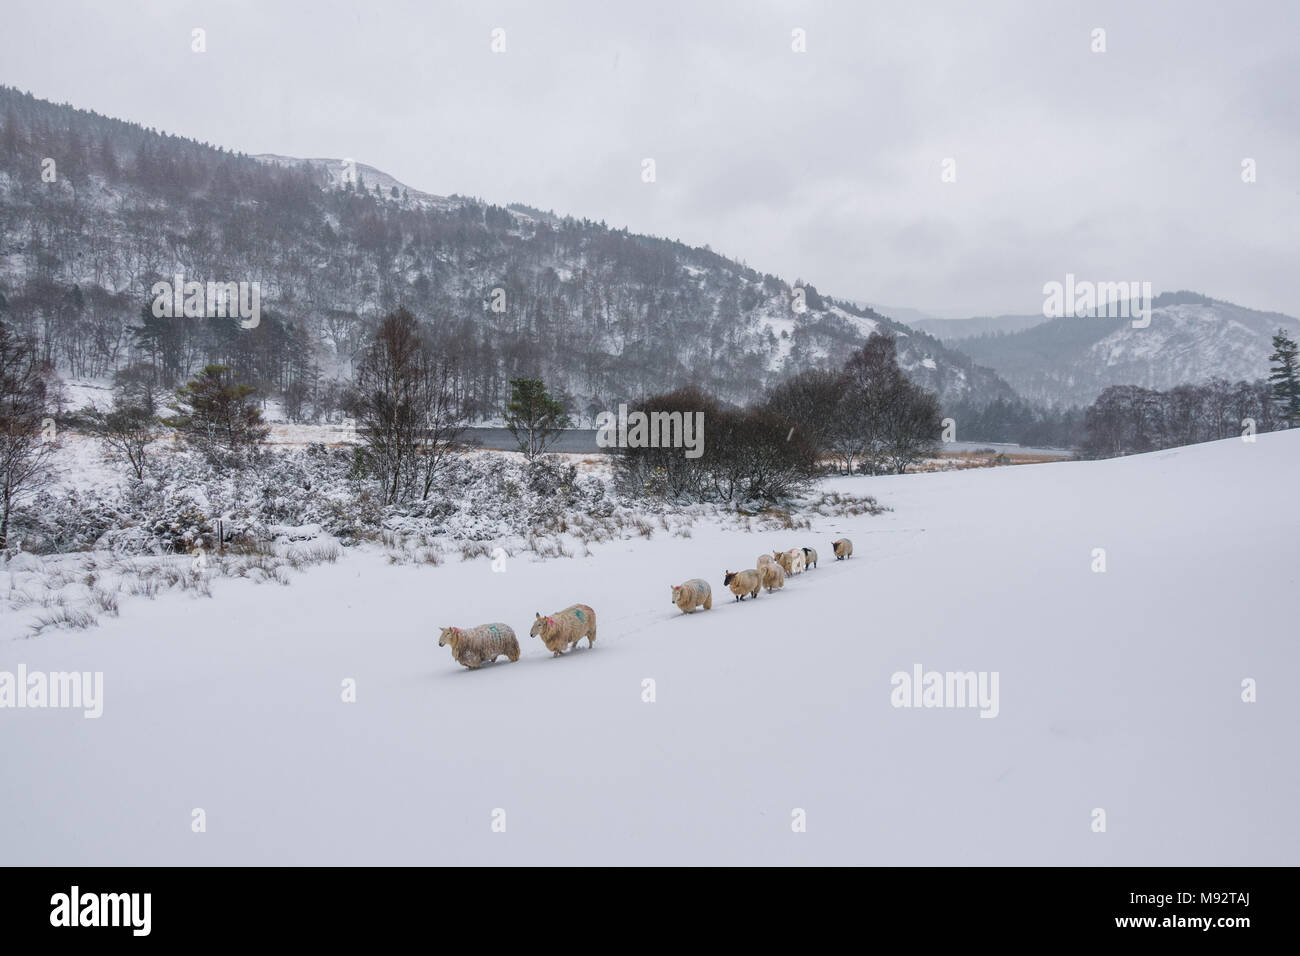 Winter in Wicklow Mountains - Ireland - Stock Image